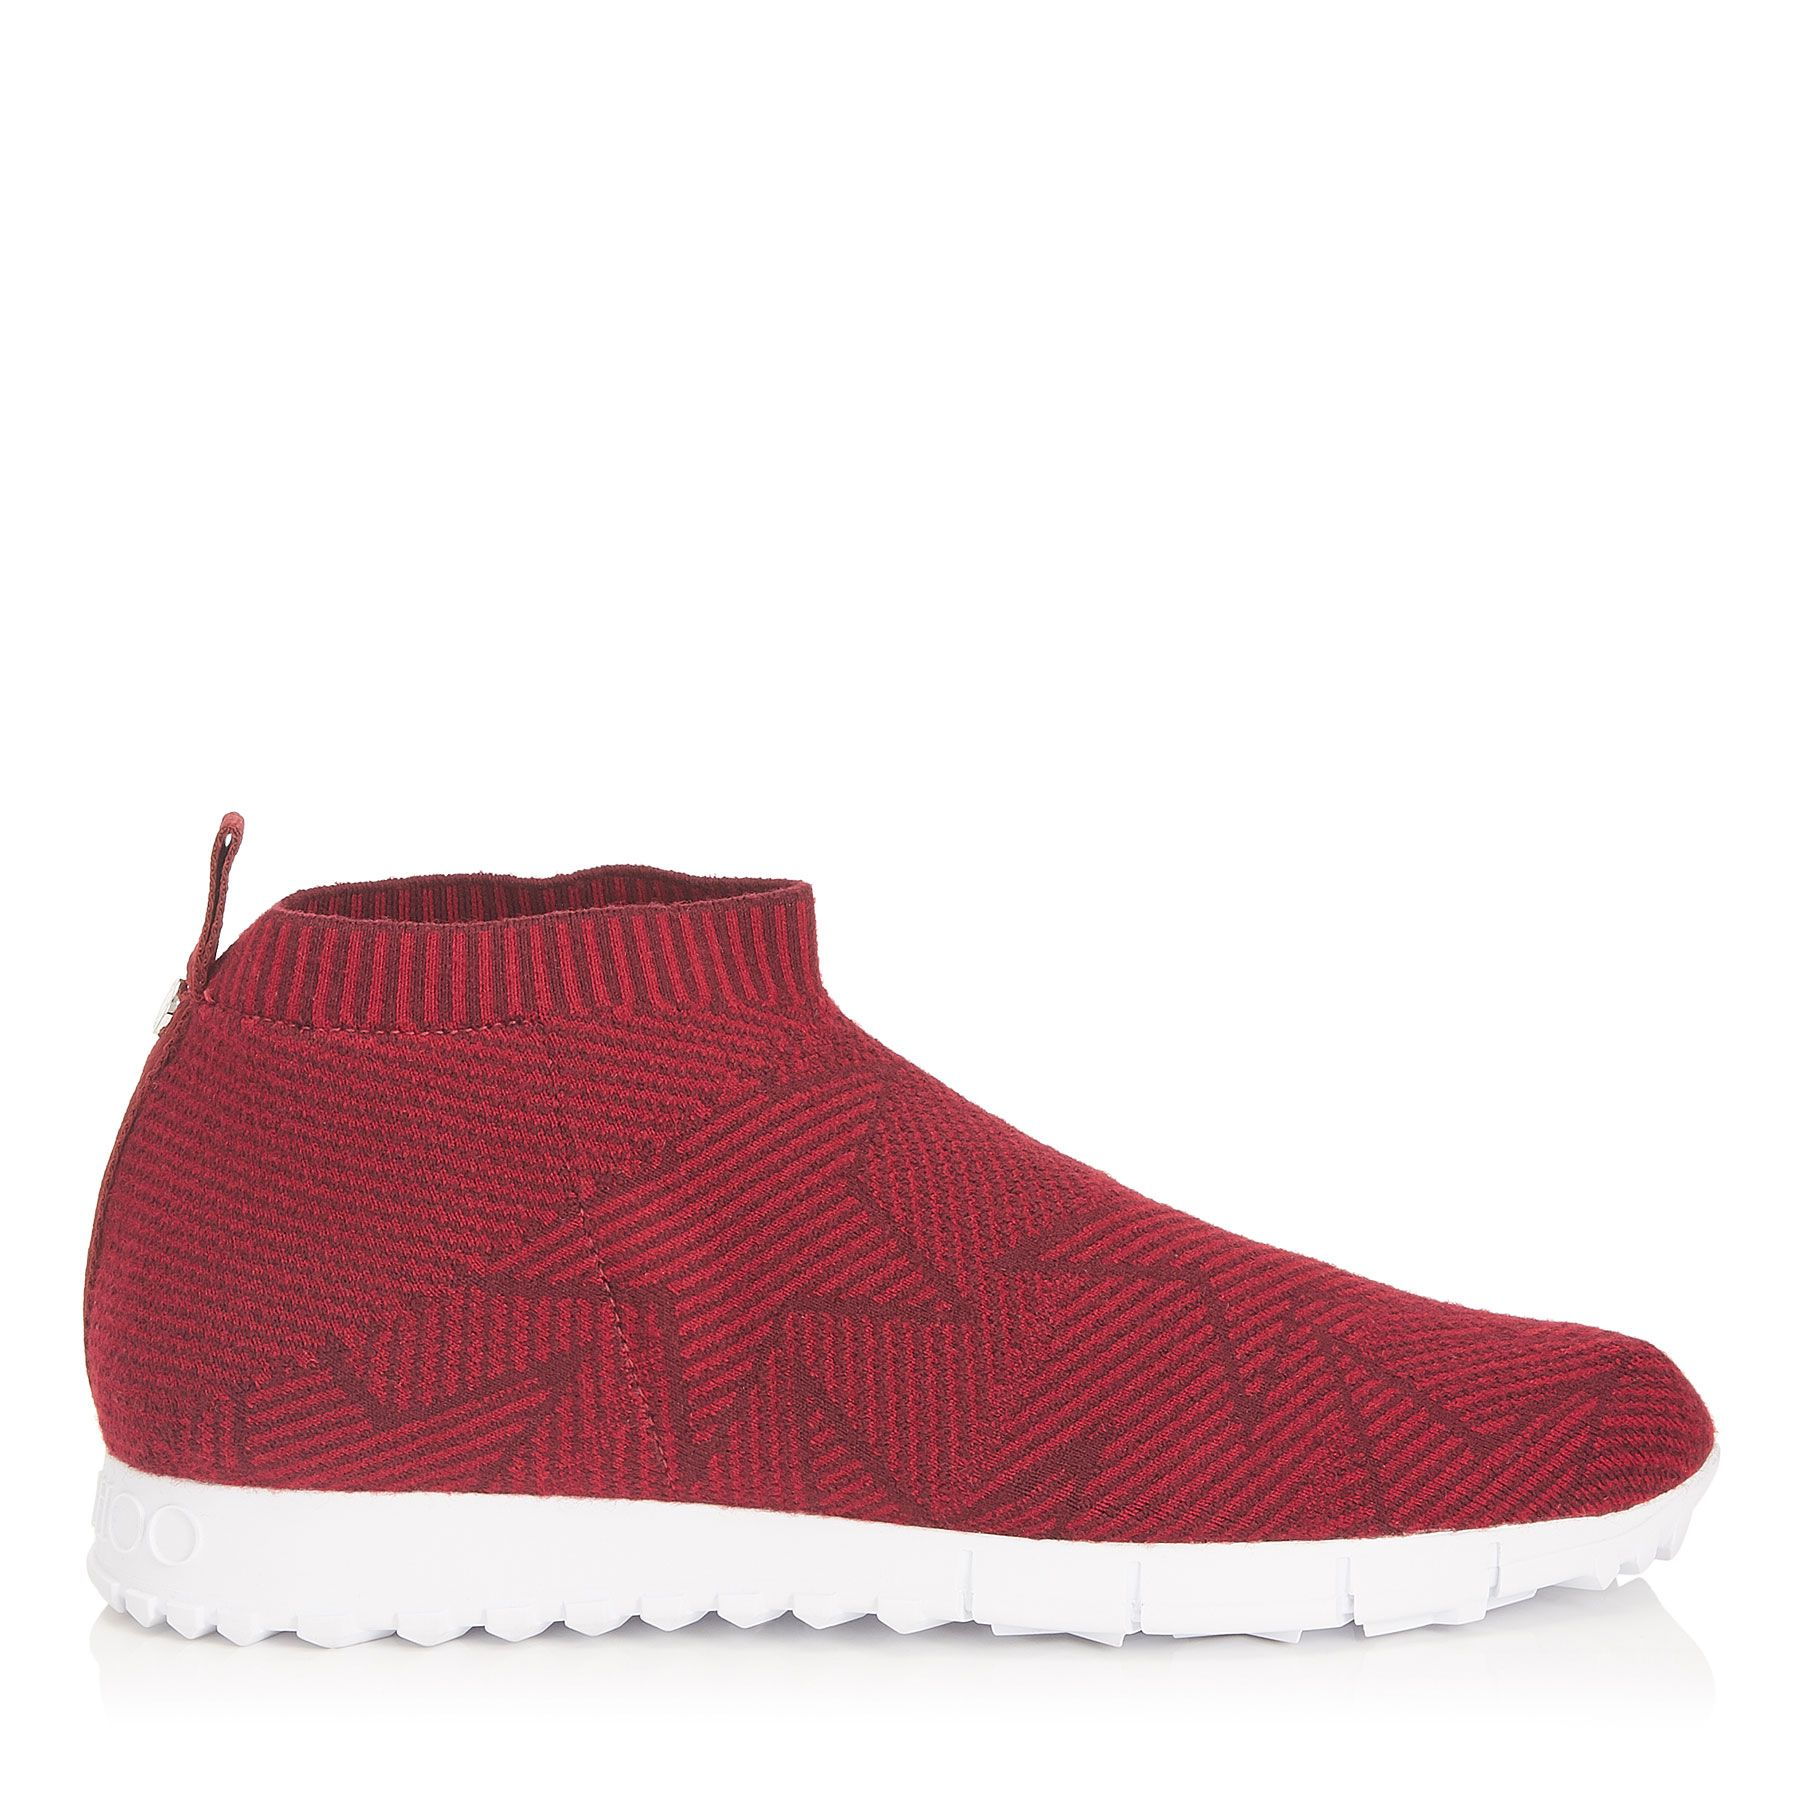 66100a7461c1 JIMMY CHOO NORWAY M RED AND BORDEAUX KNIT TRAINERS.  jimmychoo  shoes